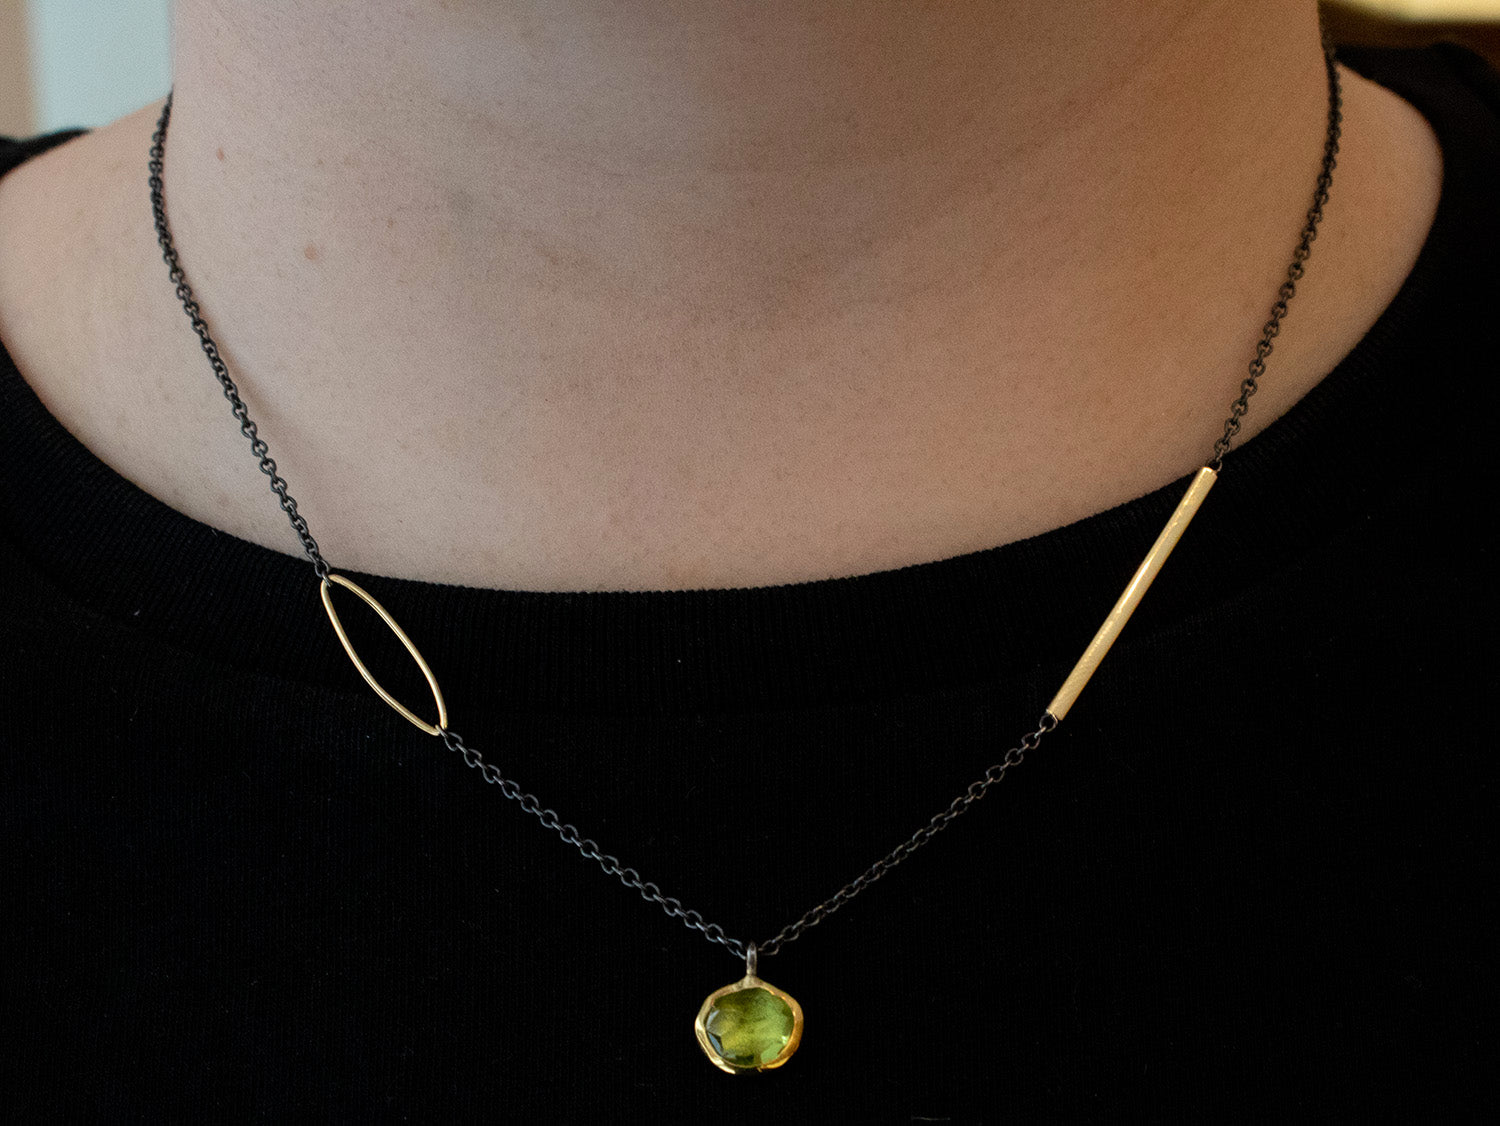 Peridot Necklace at the Best Jewelry Store in Washington DC